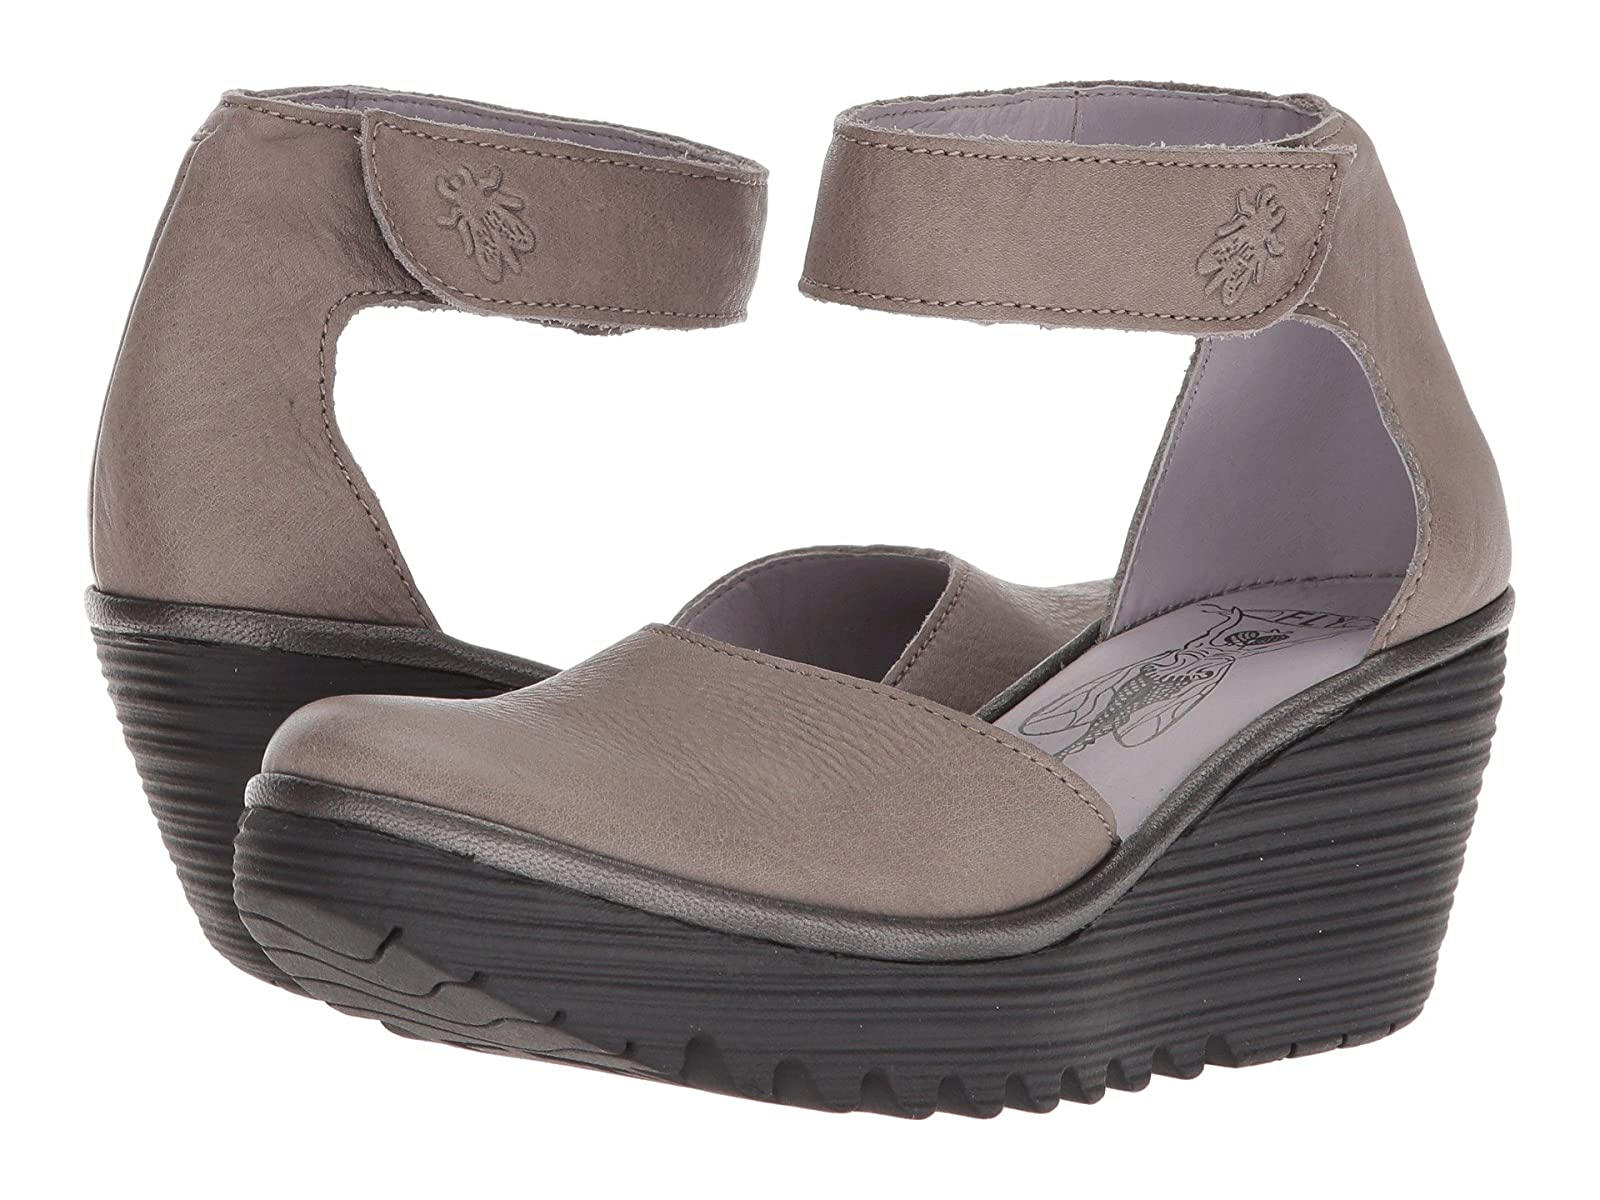 FLY LONDON Yand709FlyAtmospheric grades have affordable shoes